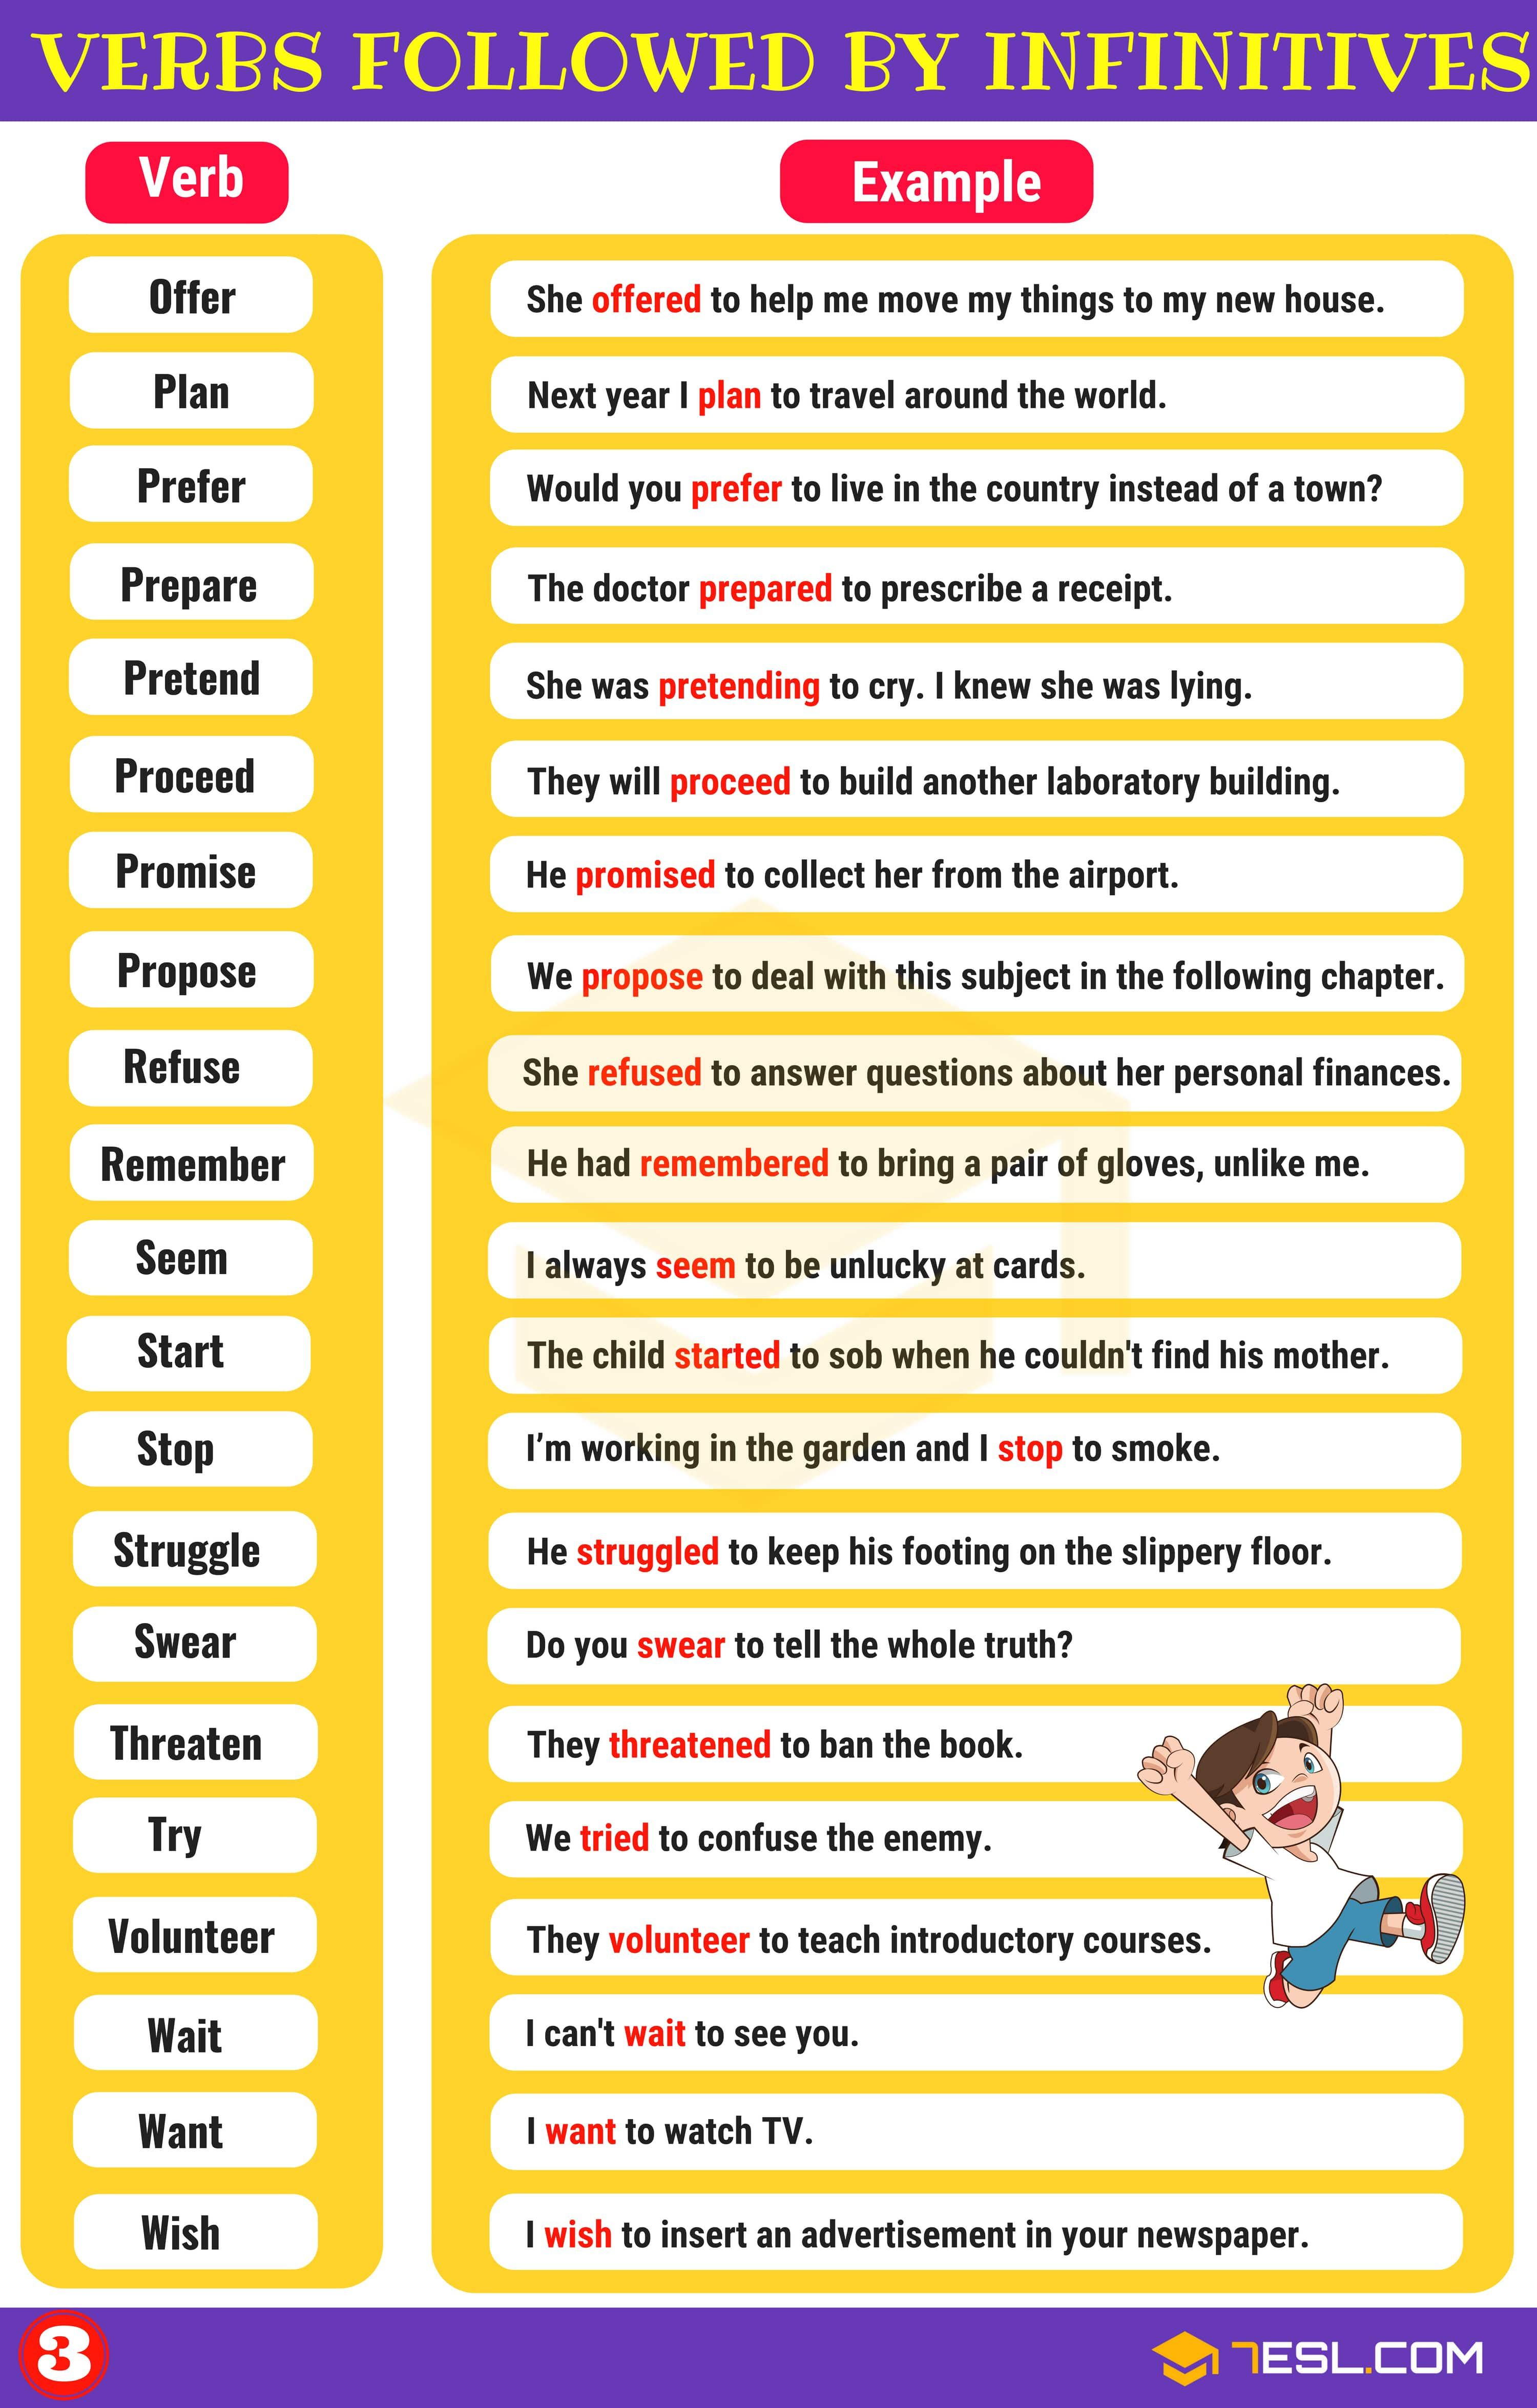 55 Common Verbs Followed By Infinitives In English English